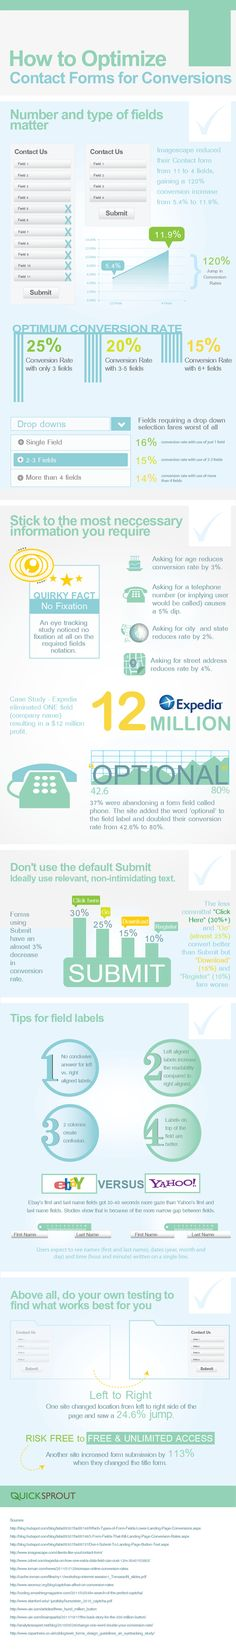 How To #Optimize Contact Forms For #Conversions #Infographic: http://unbounce.com/conversion-rate-optimization/how-to-optimize-contact-forms/?utm_source=social_medium=pinterest_content=conversion-rate-optimization_campaign=how-to-optimize-contact-forms/